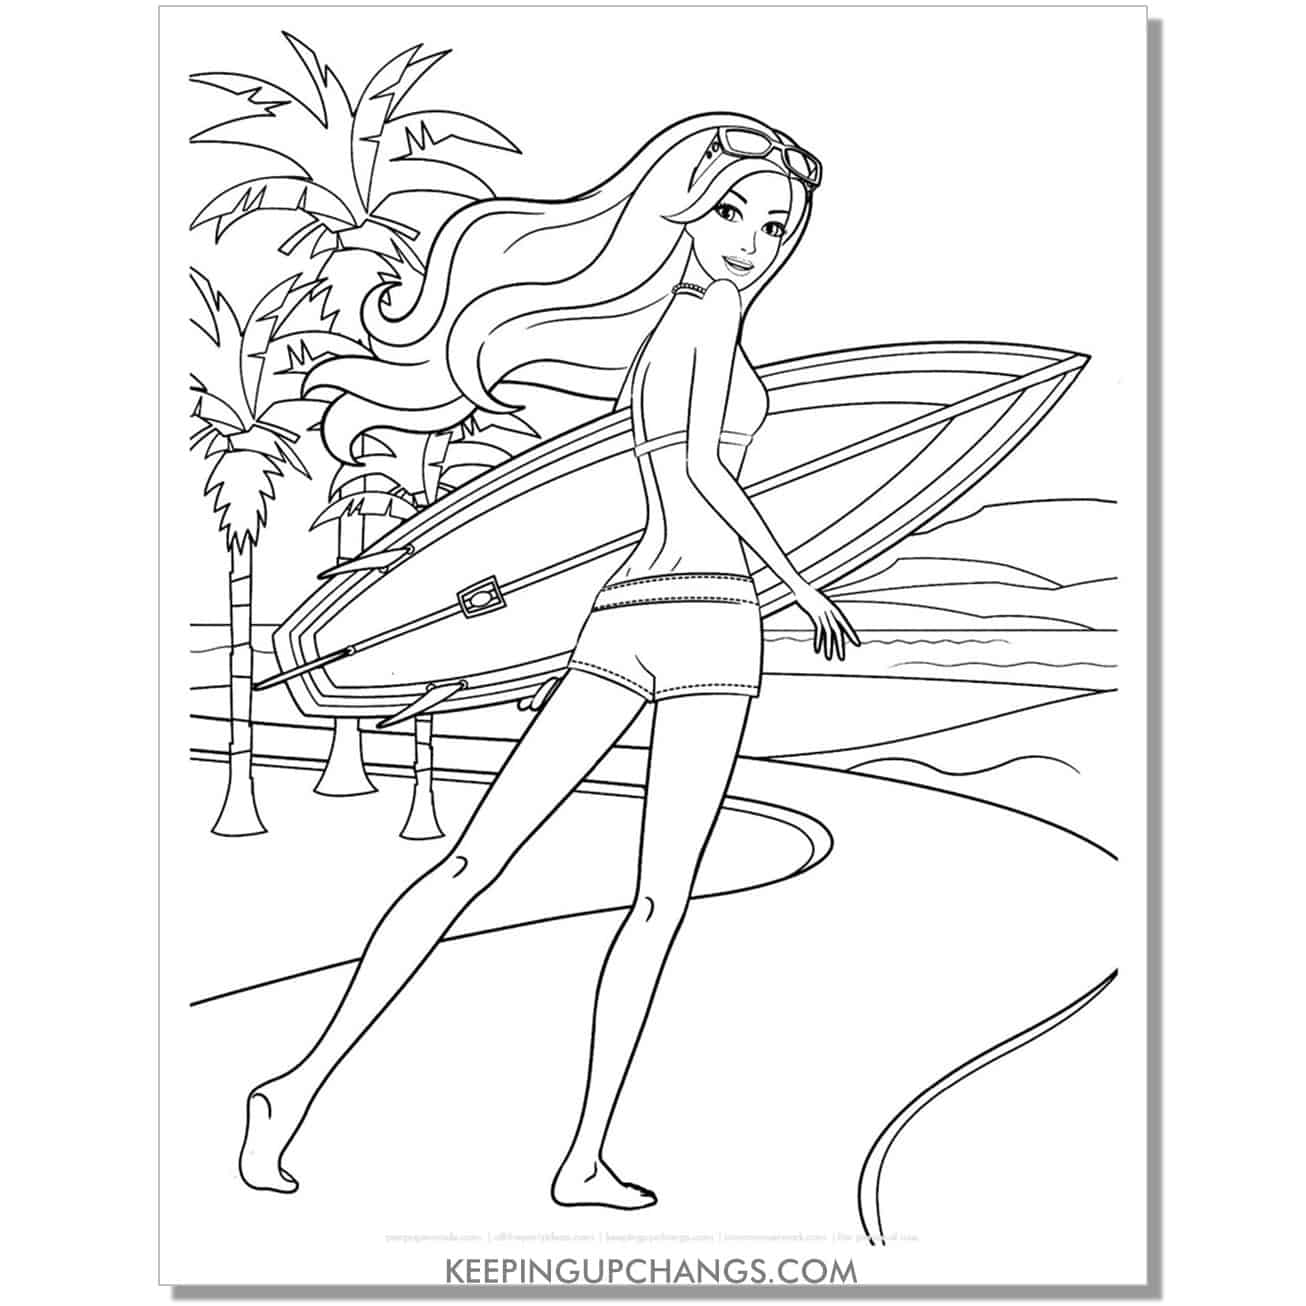 barbie with surfboard and goggles walking on path coloring page.